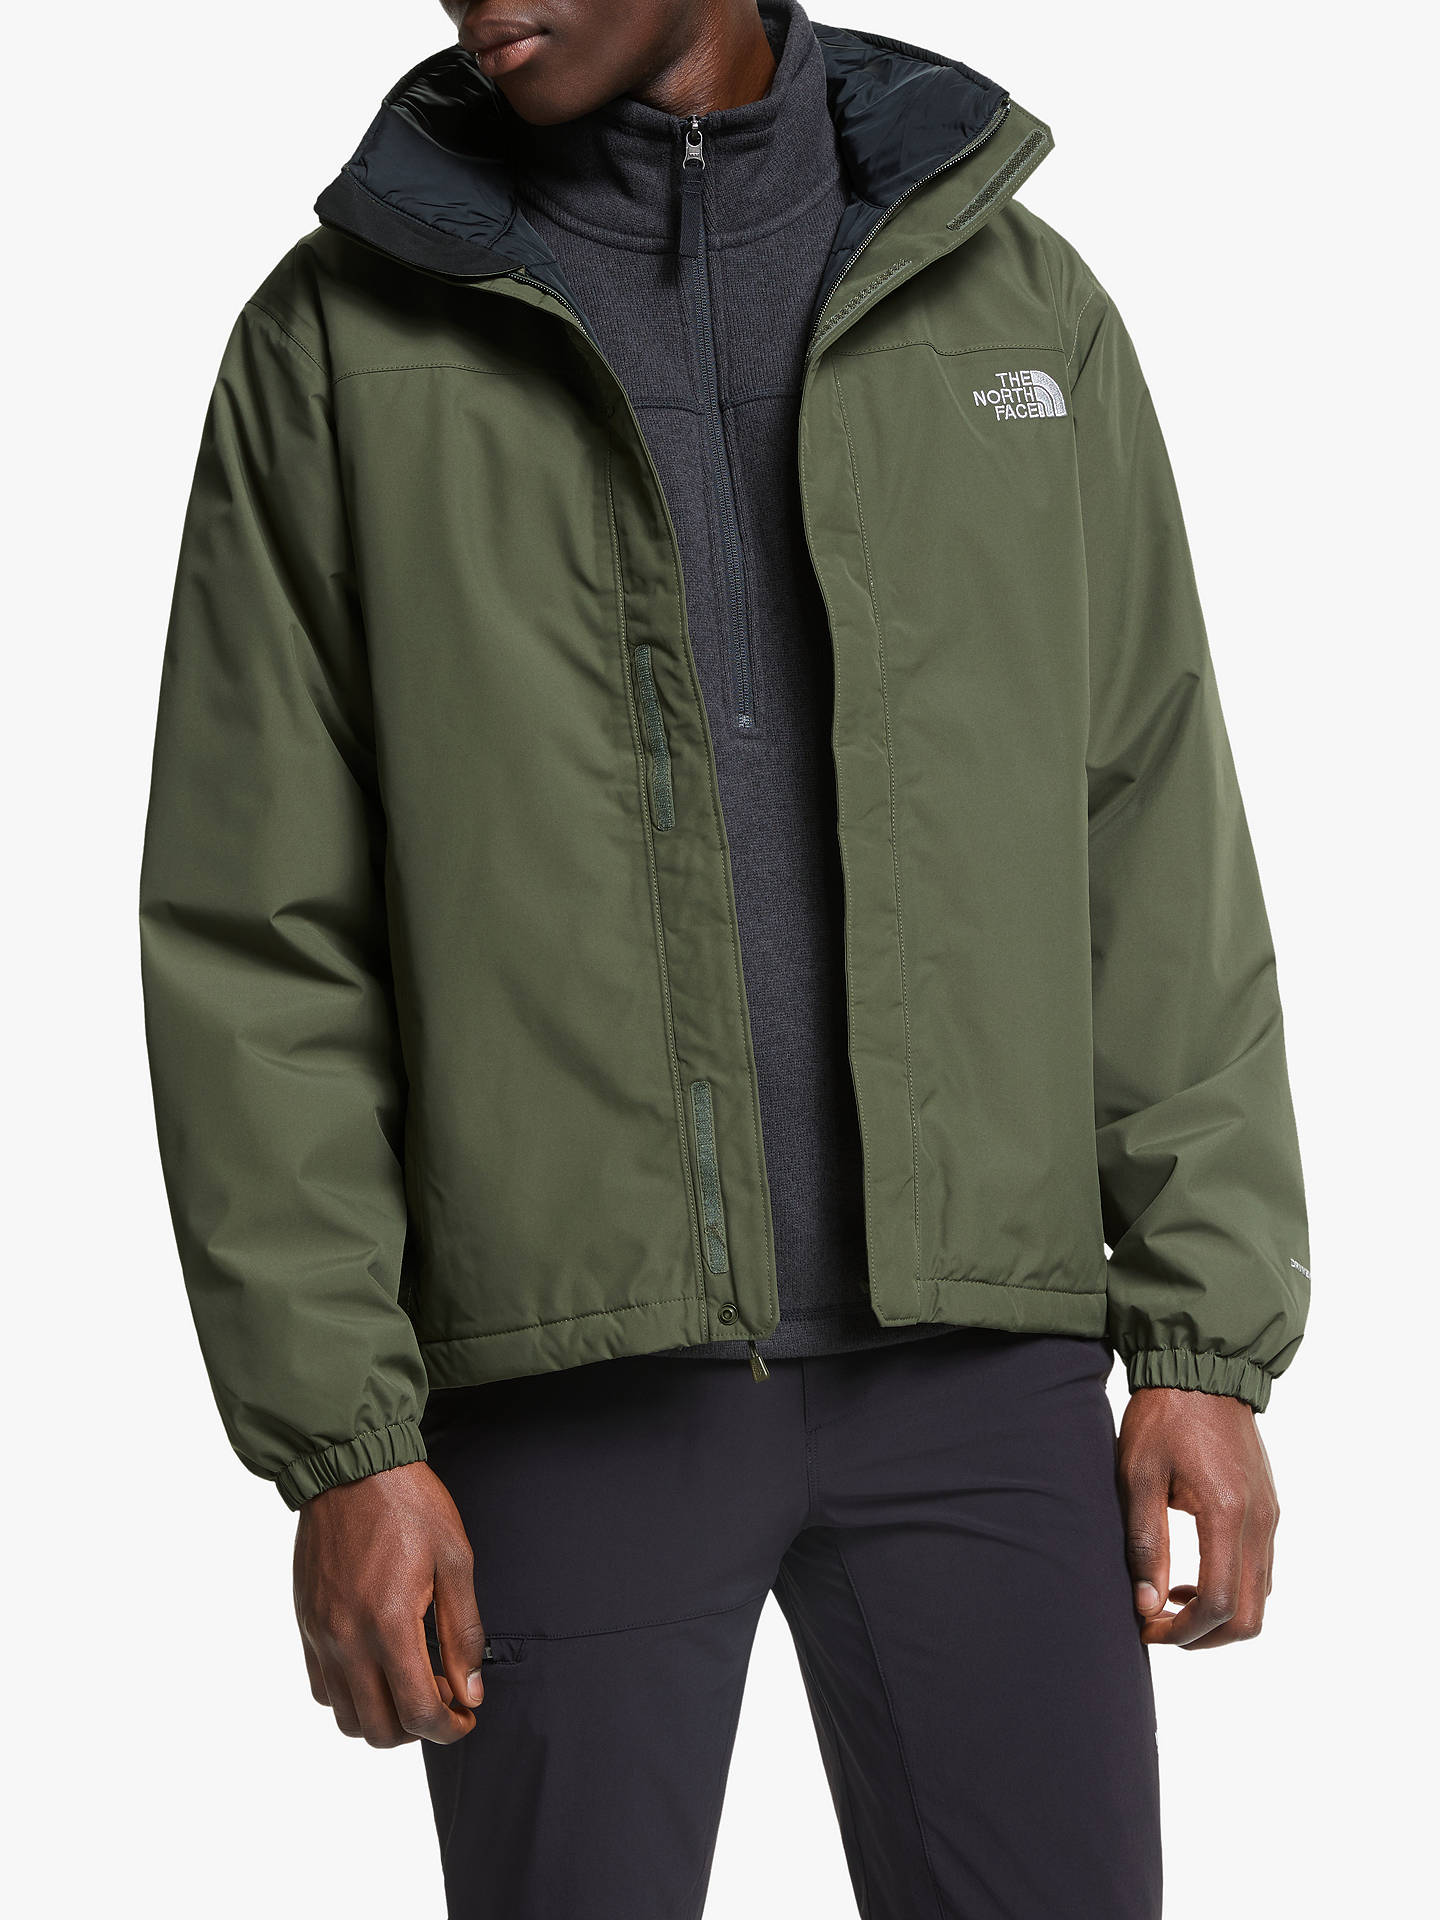 The North Face Resolve Men's Insulated Jacket, New Taupe Green by The North Face